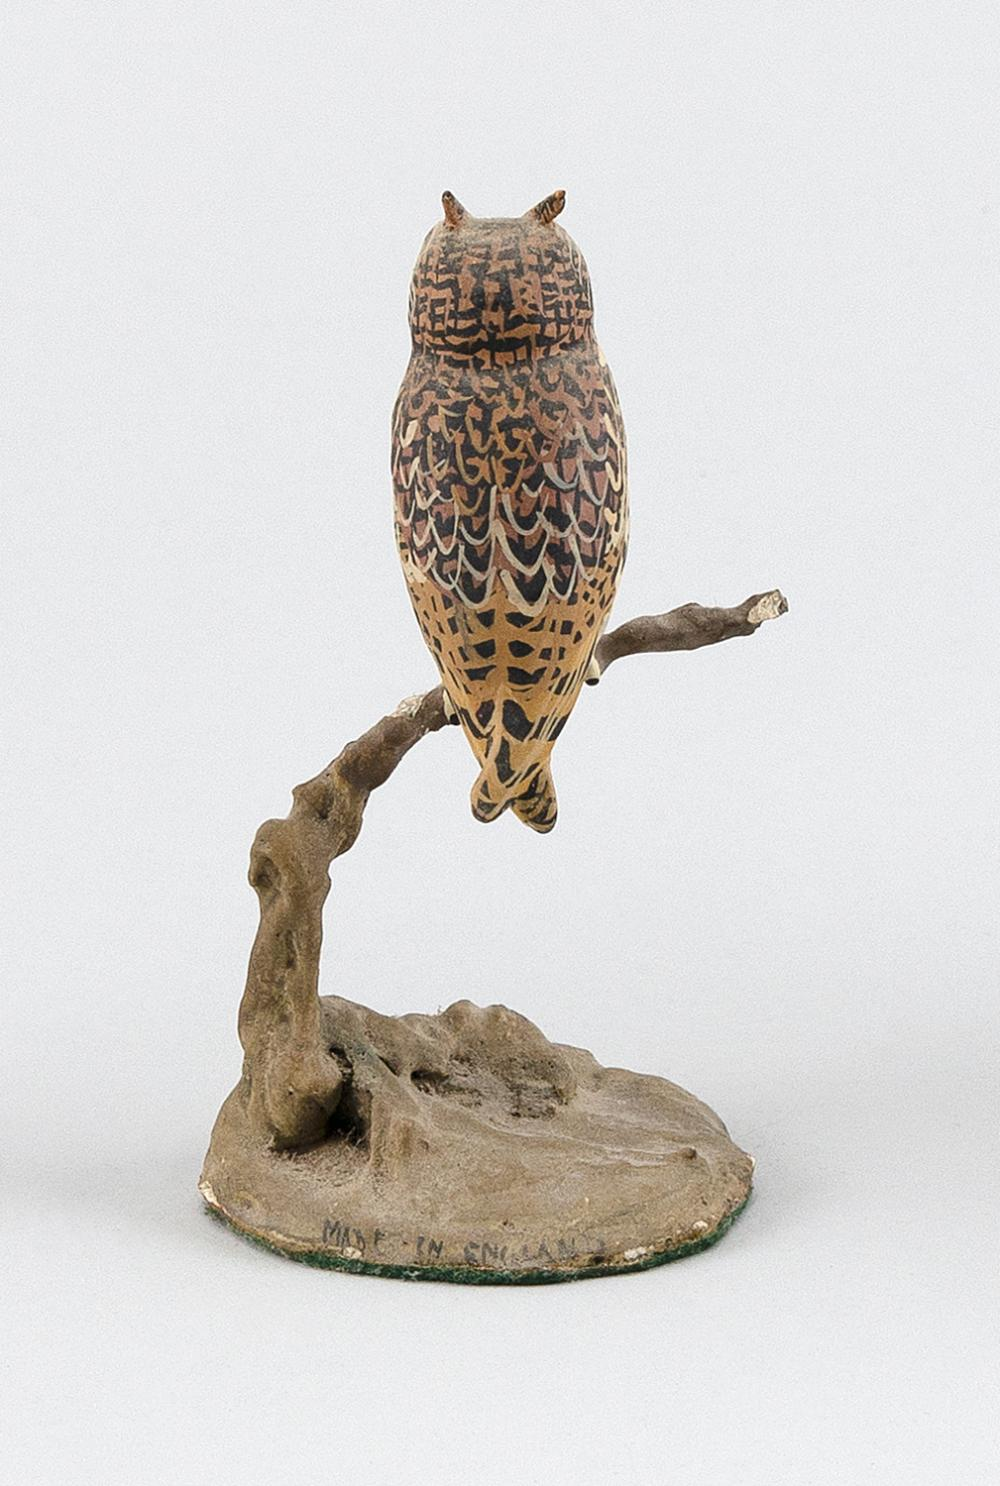 MINIATURE COMPOSITE SCULPTURE OF A LONG-EARED OWL Height 4.5